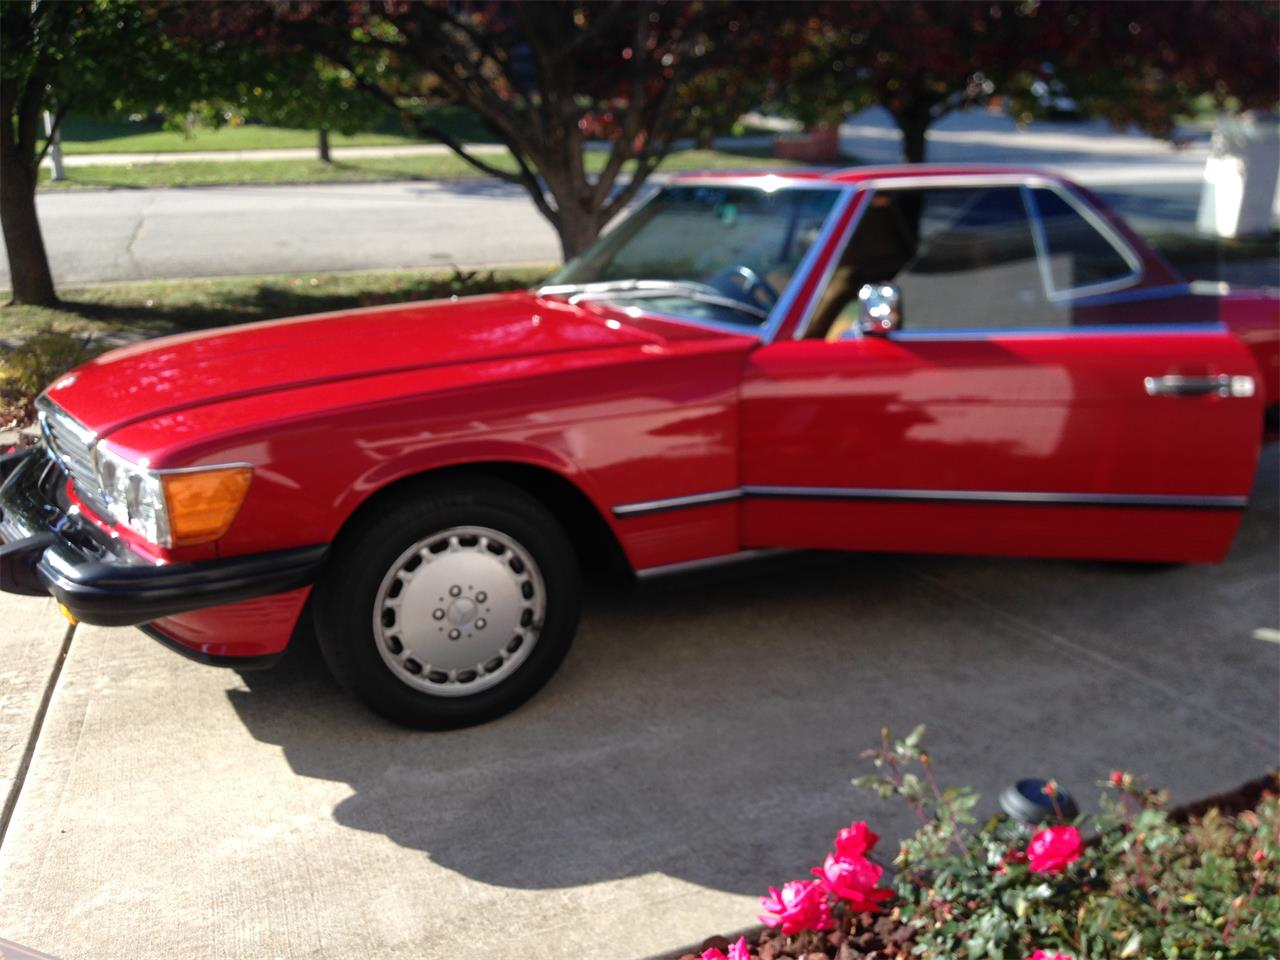 Large Picture of 1988 Mercedes-Benz 560SL located in Orland park Illinois - $35,000.00 Offered by a Private Seller - FVWF